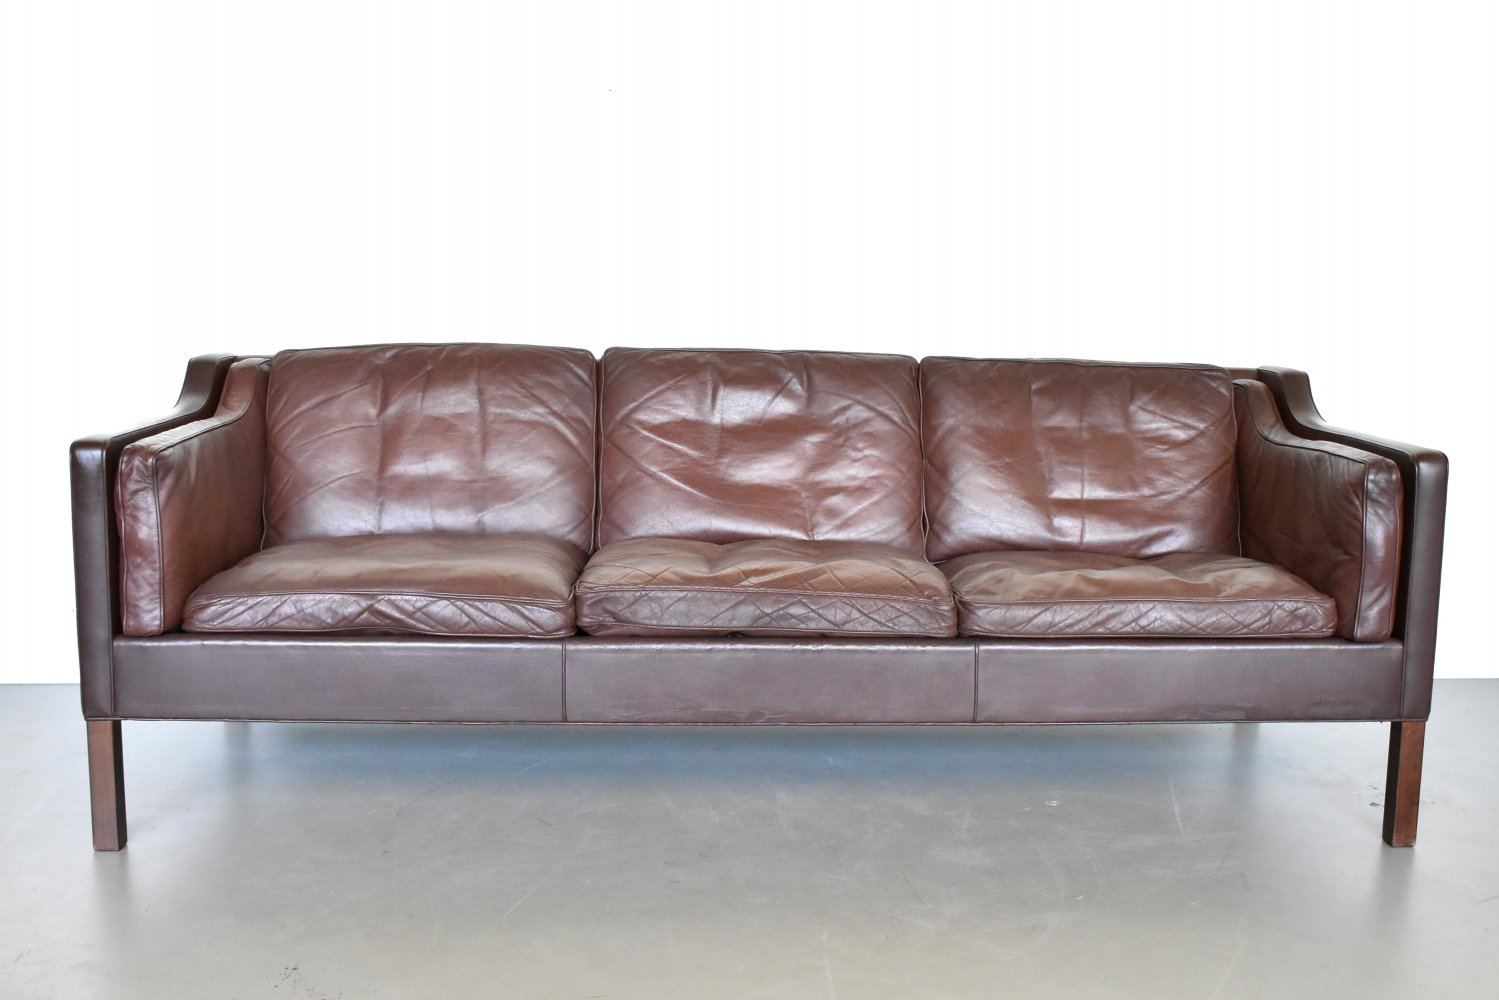 Model 2213 sofa by Børge Mogensen for Fredericia Stolefabrik, 1960s